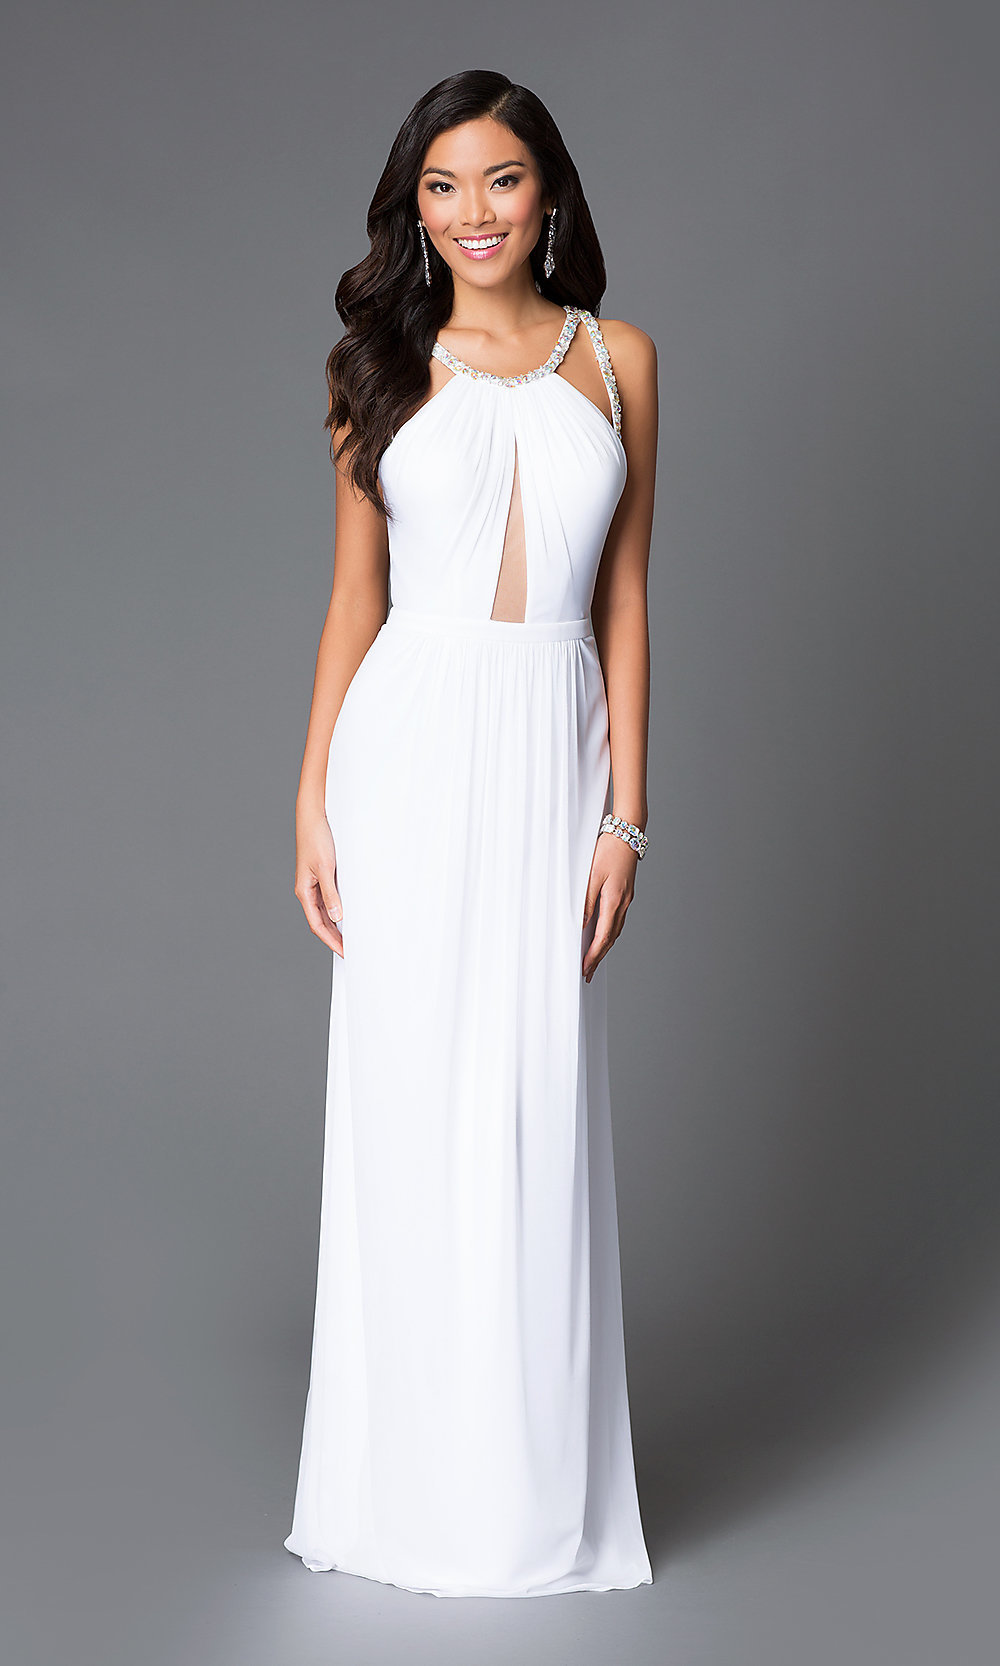 Wedding Long Formal Dress long white high neck sheer keyhole dress promgirl hover to zoom